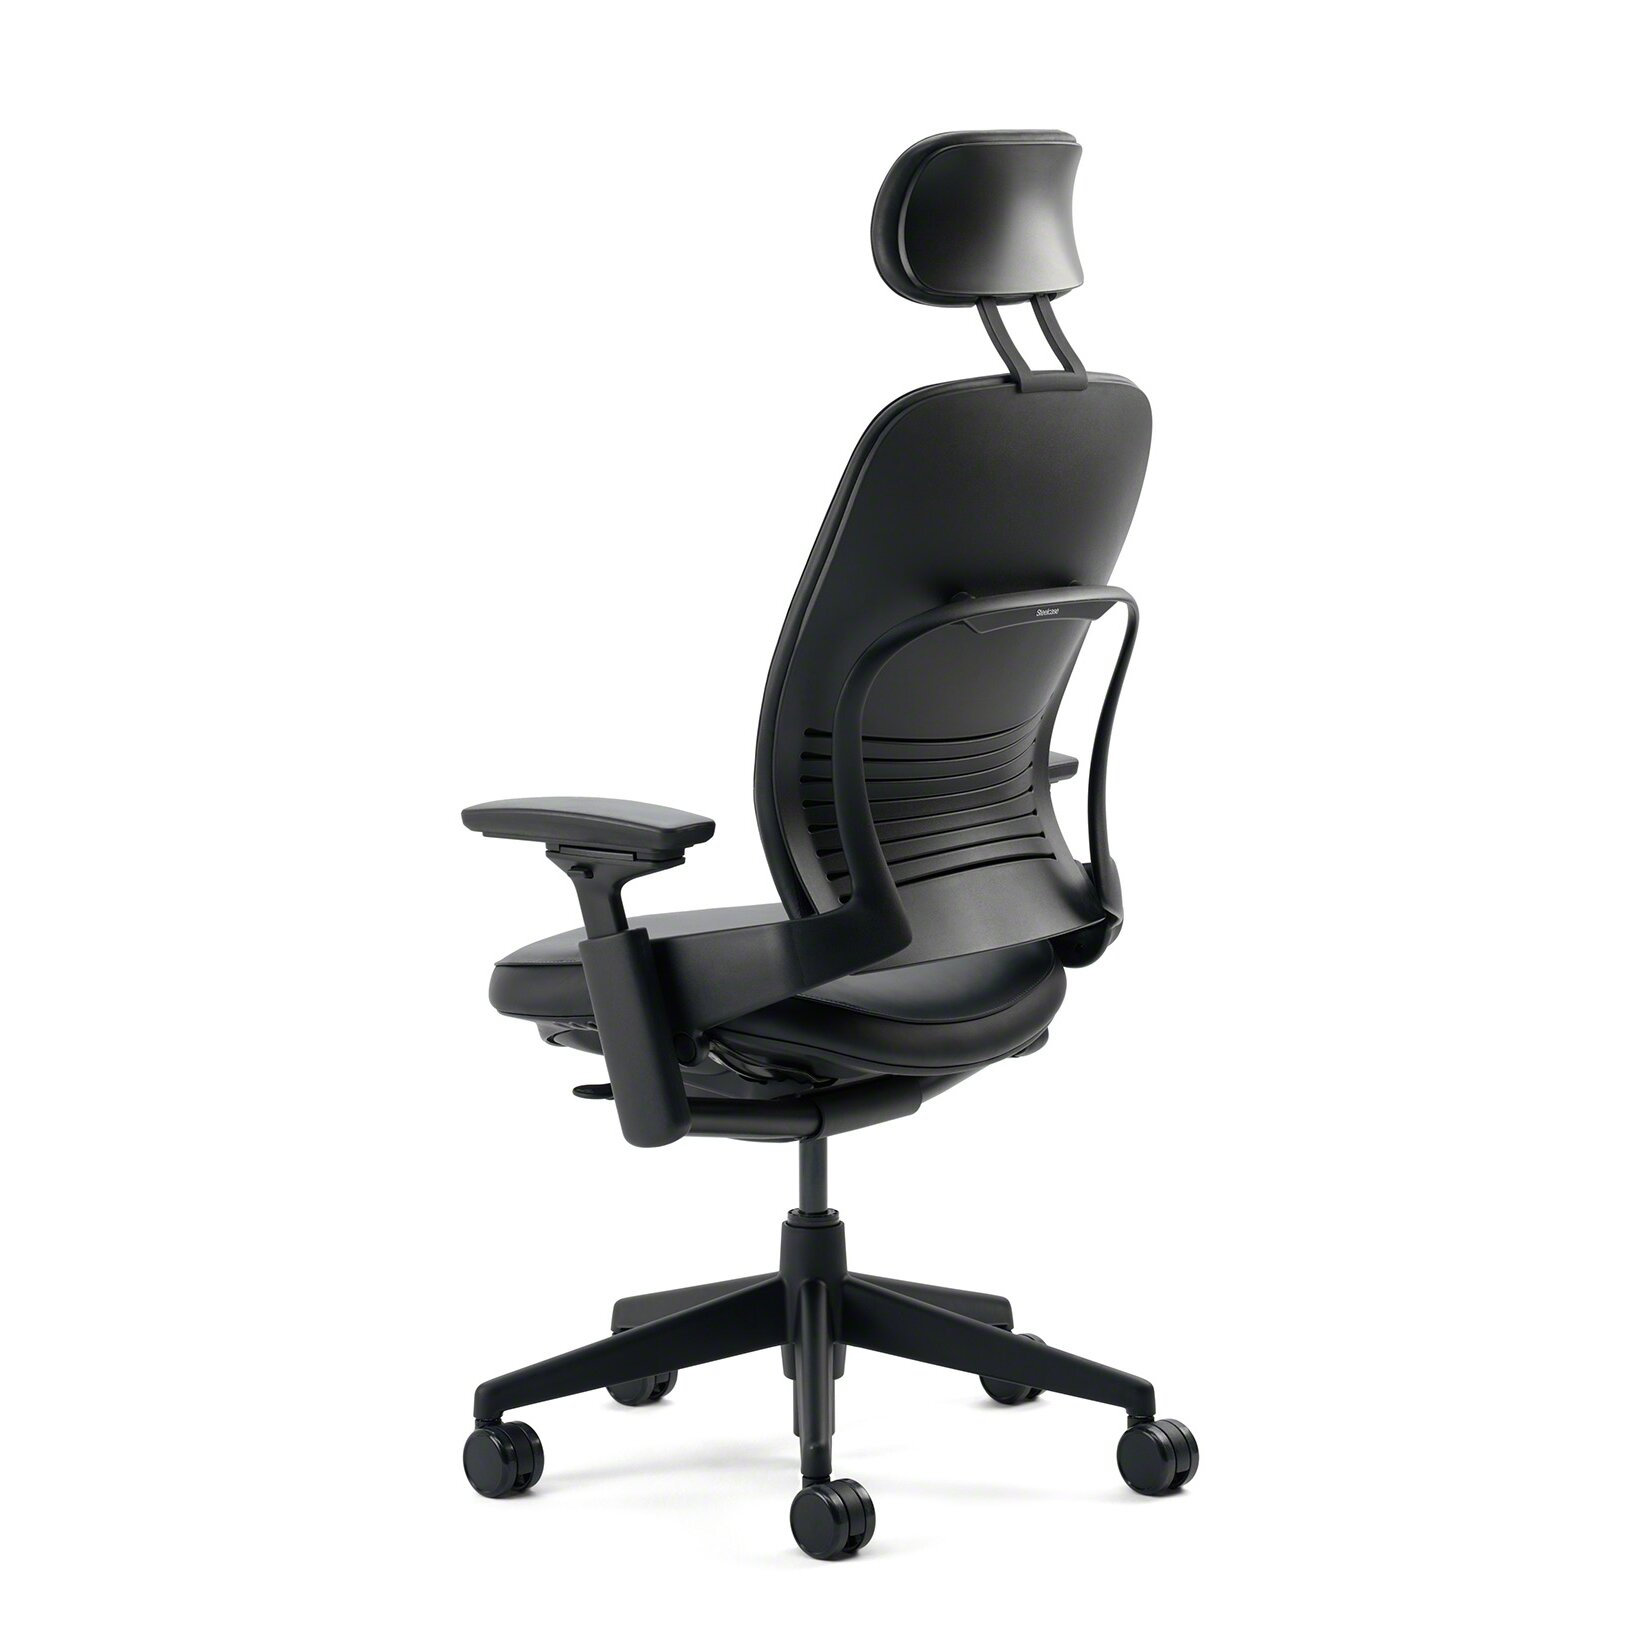 Steelcase Leap High Back Leather Desk Chair Reviews Wayfair